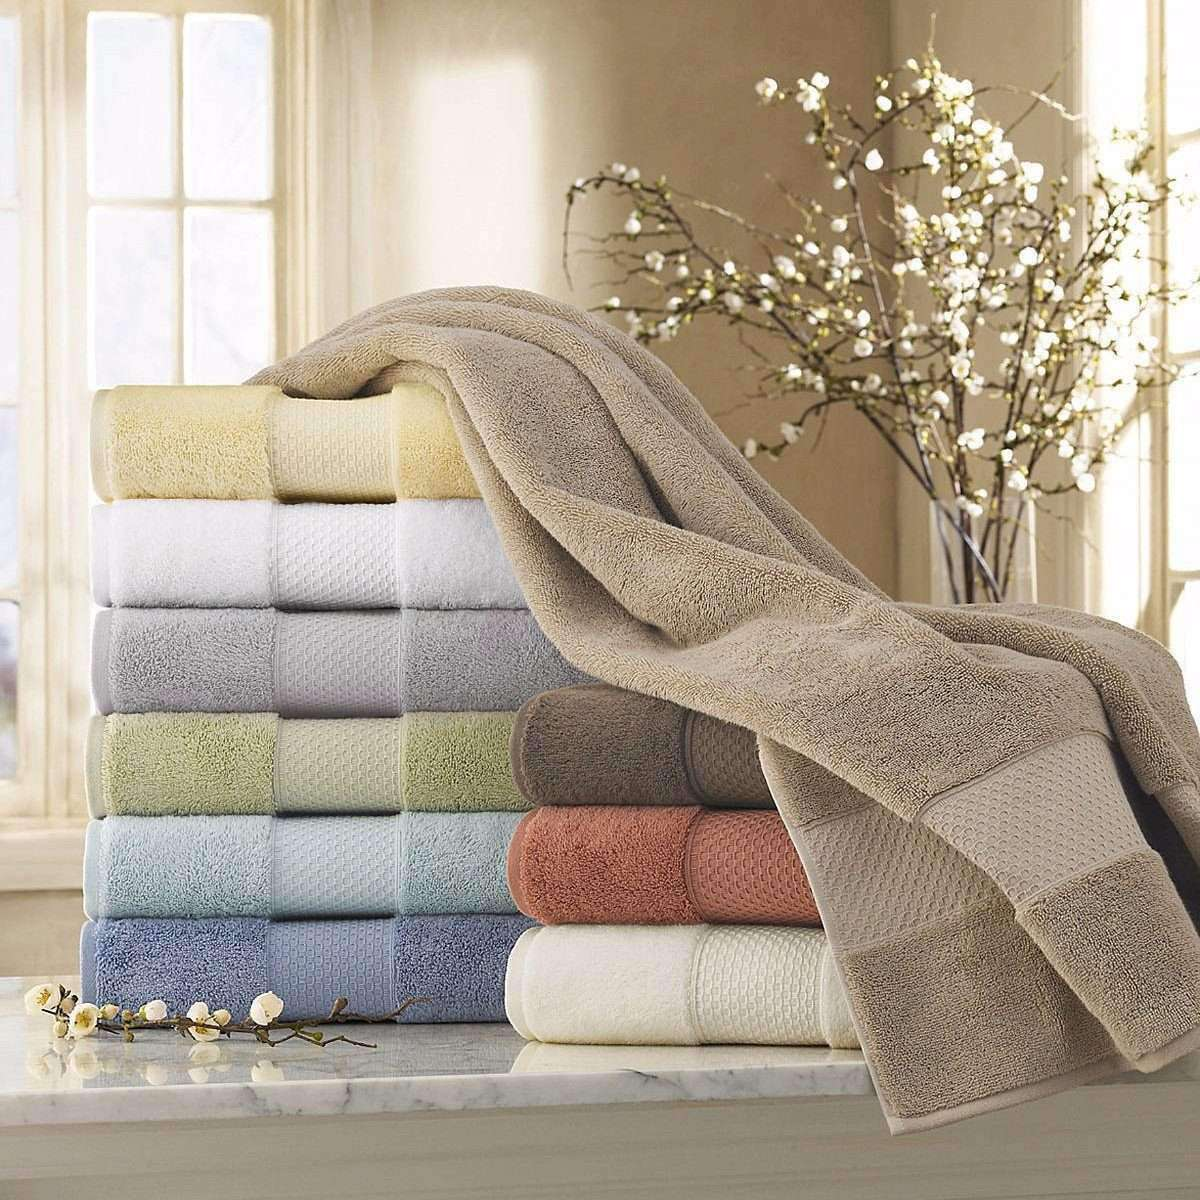 Mariabella Luxury Cotton Turkish Towels - Luxor Linens